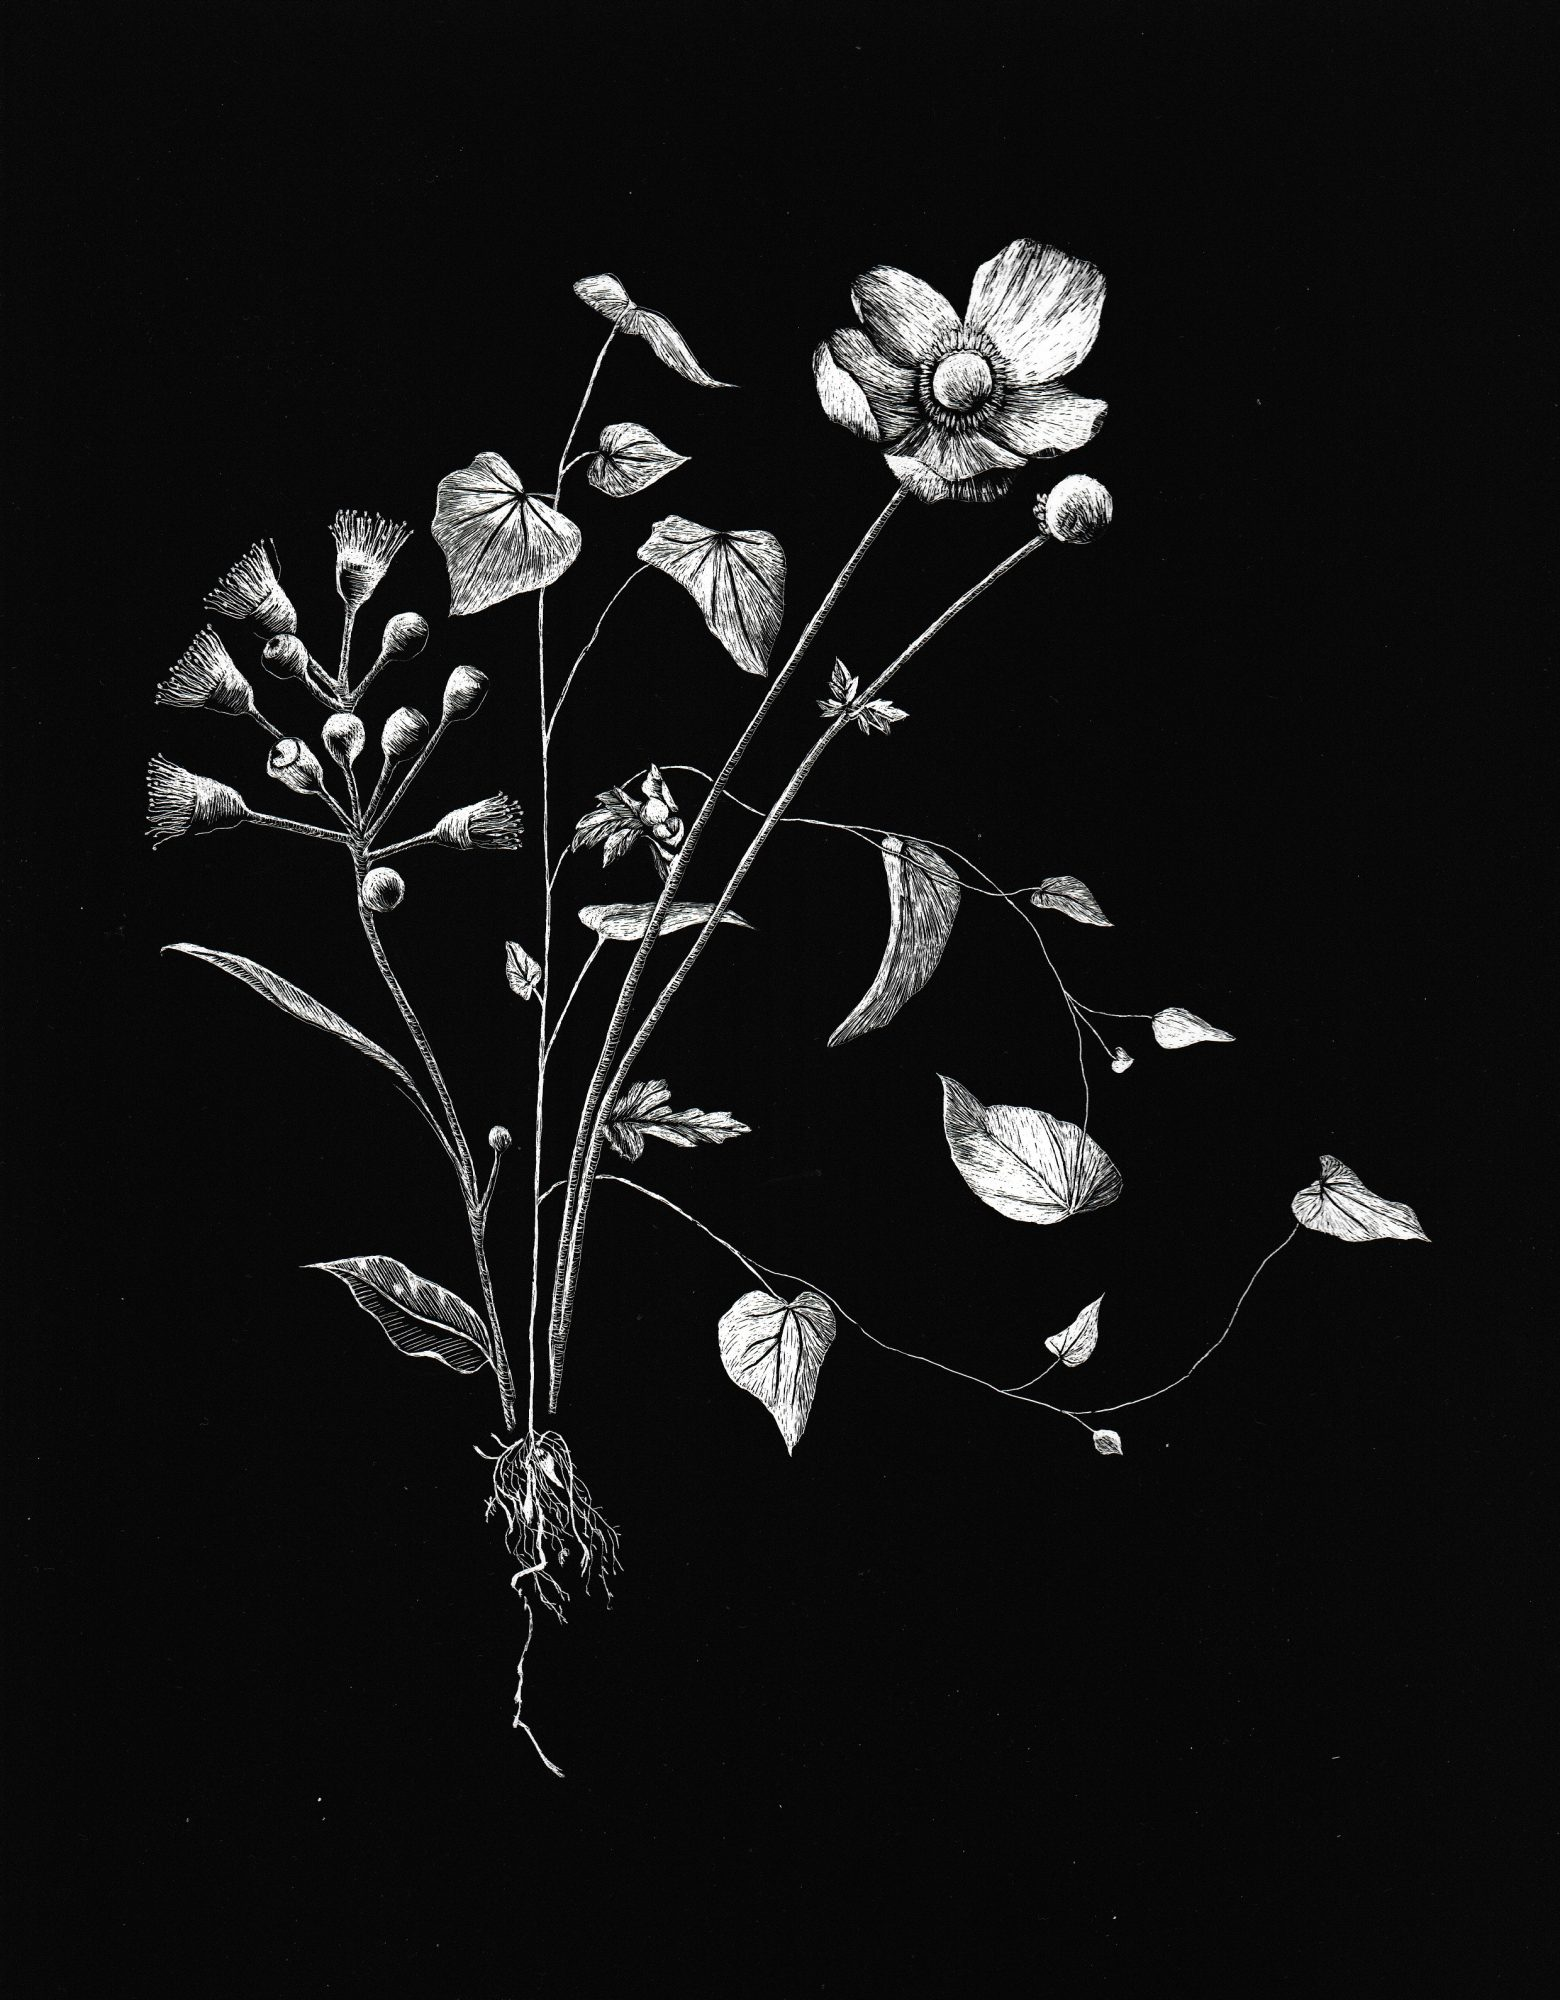 sold-botany-scanned-low-res